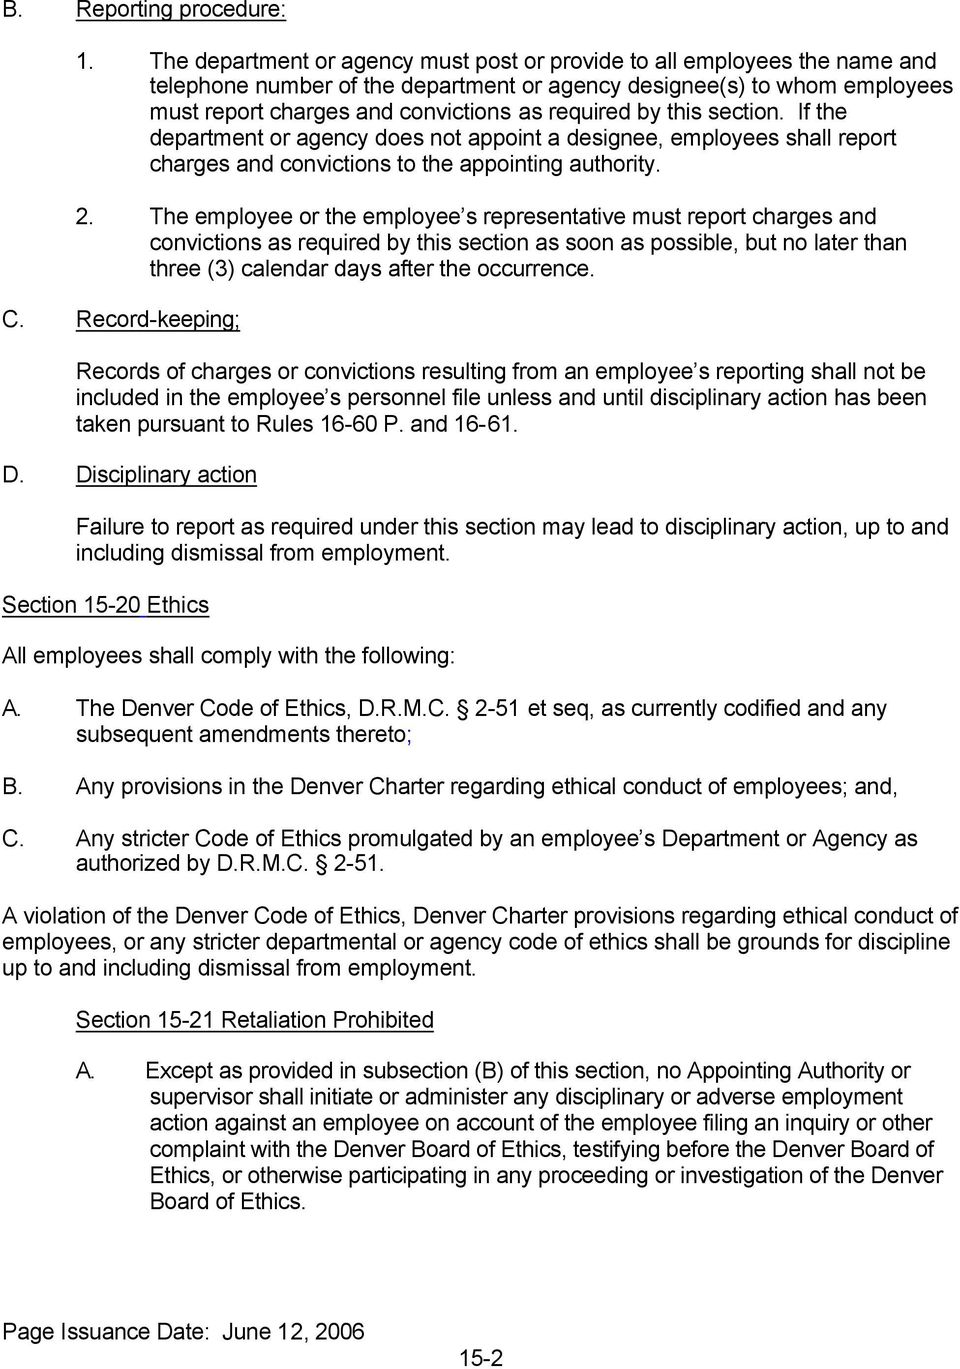 by this section. If the department or agency does not appoint a designee, employees shall report charges and convictions to the appointing authority. 2.